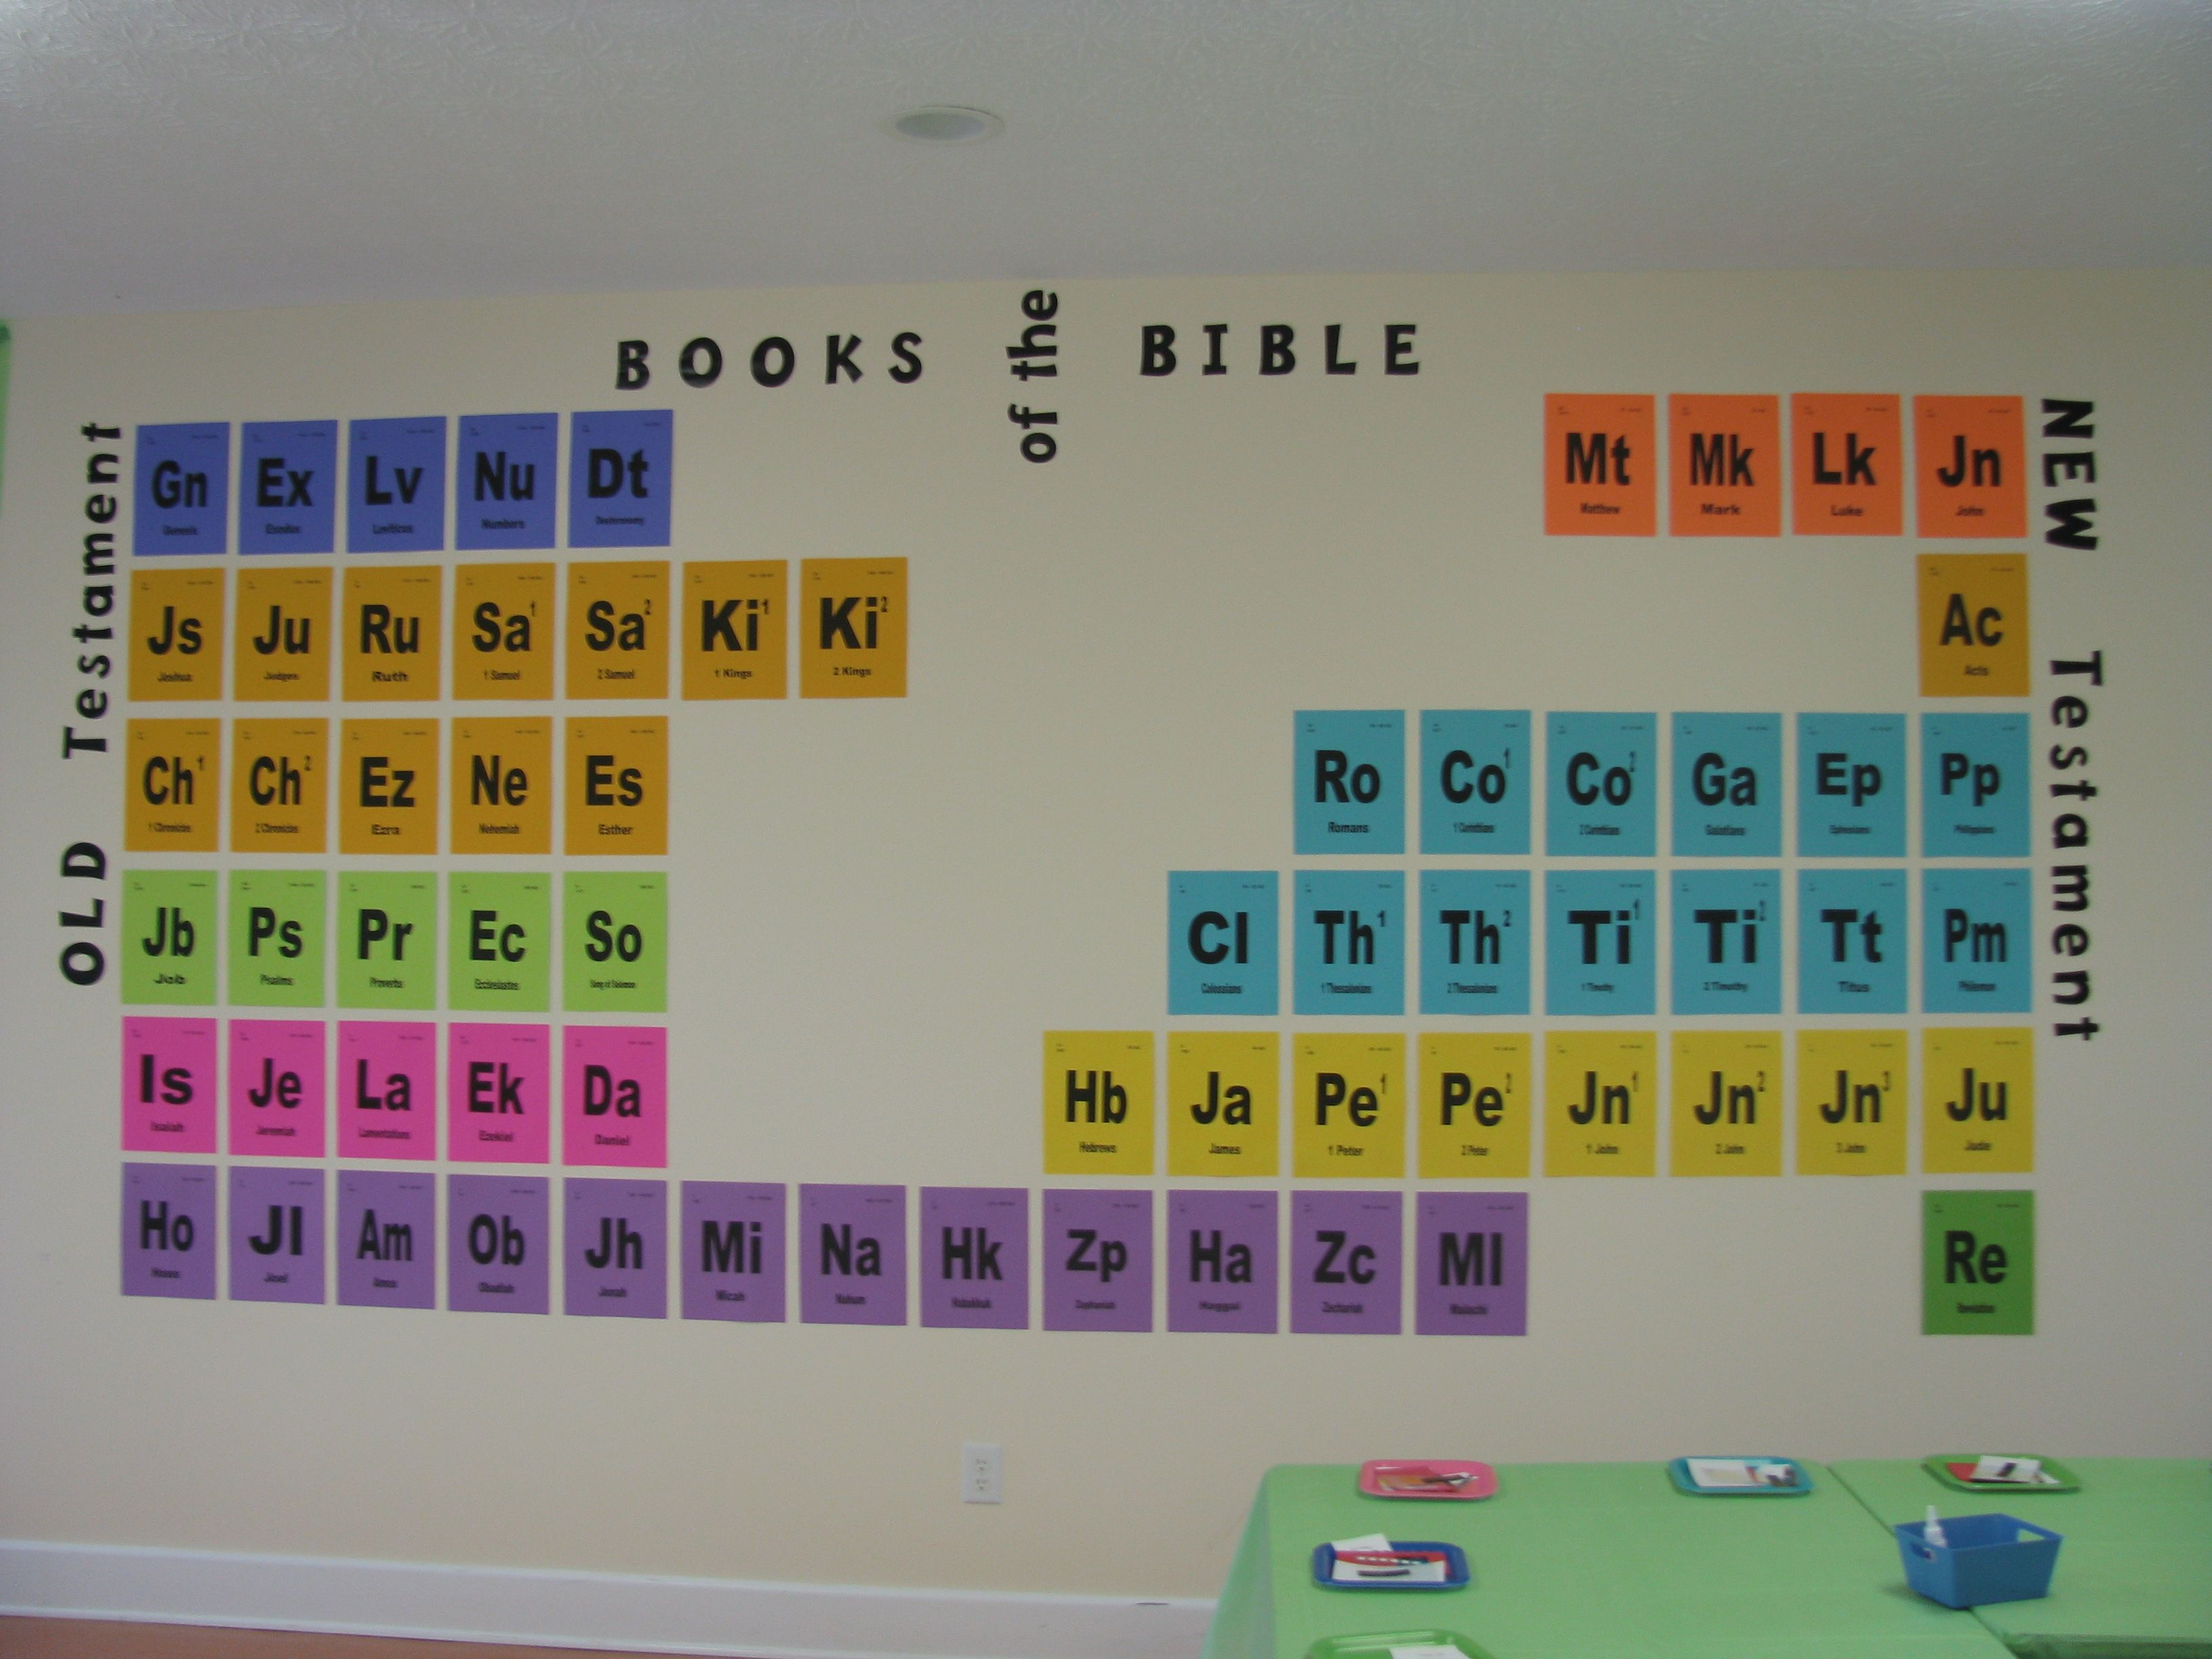 Periodic table style books of the bible i did this for the periodic table style books of the bible i did this for the fellowship hall gamestrikefo Choice Image